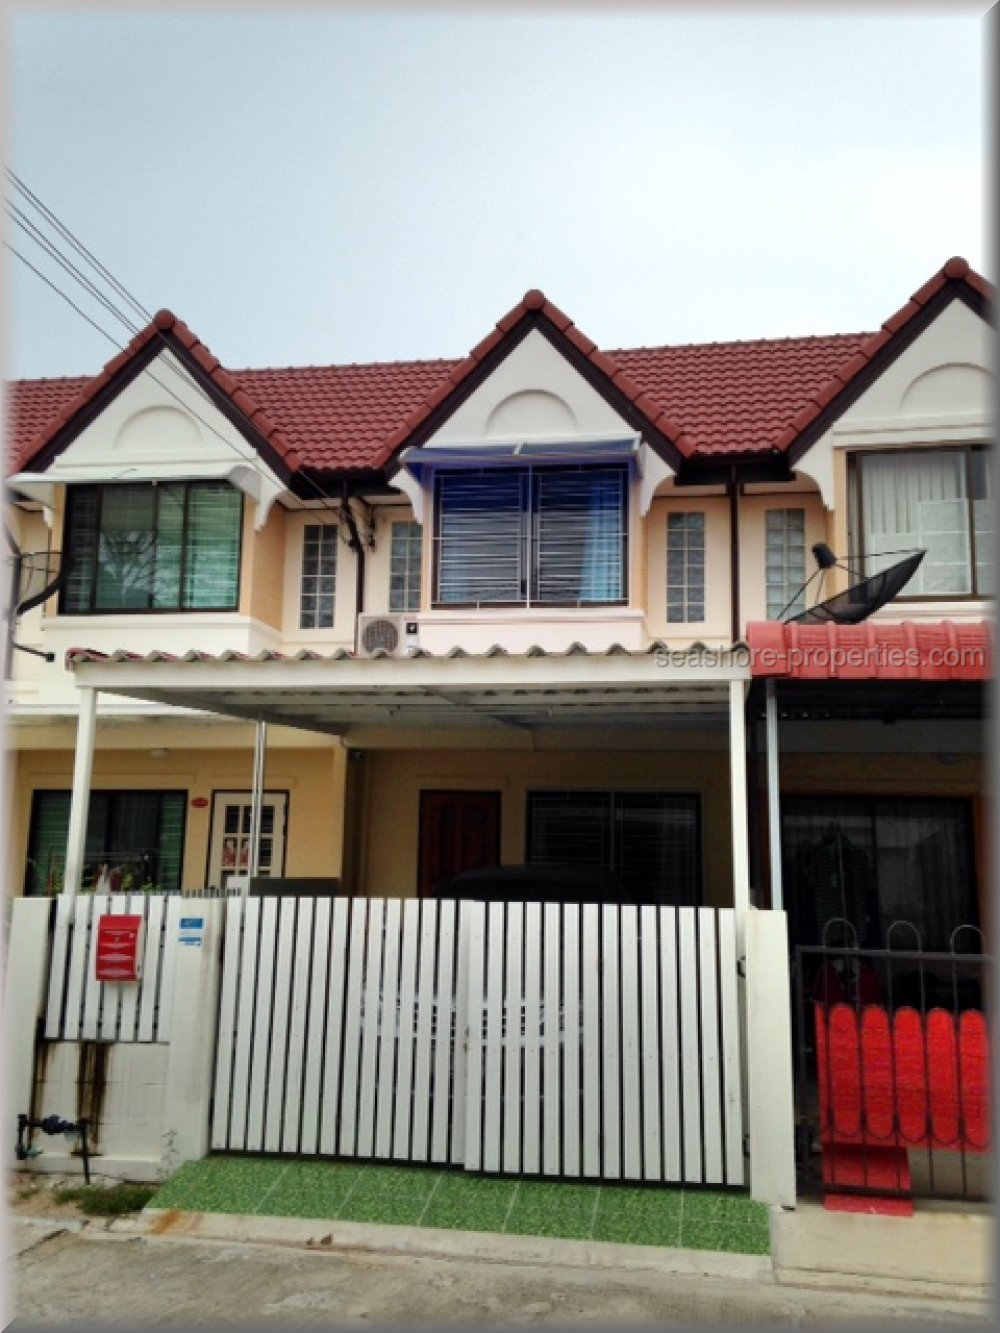 pattaya house hus till salu rent East Pattaya